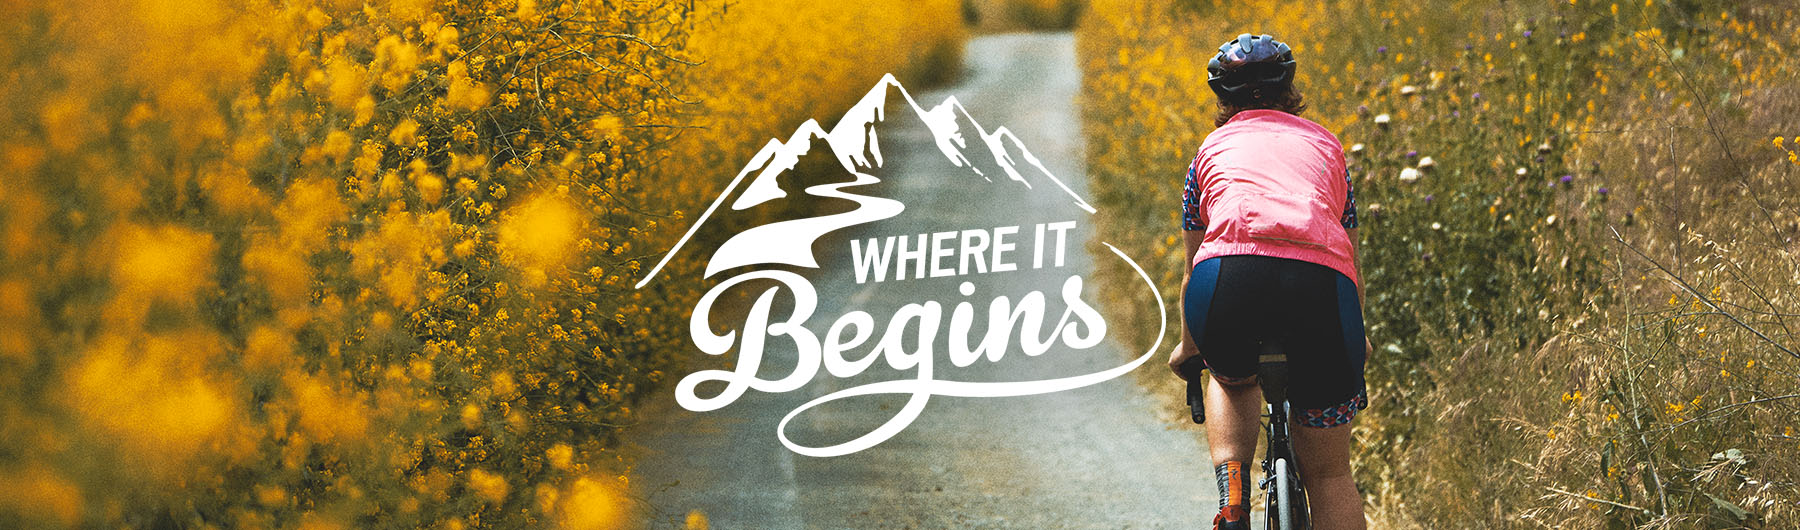 Where It Begins - Specialized women's in-store events